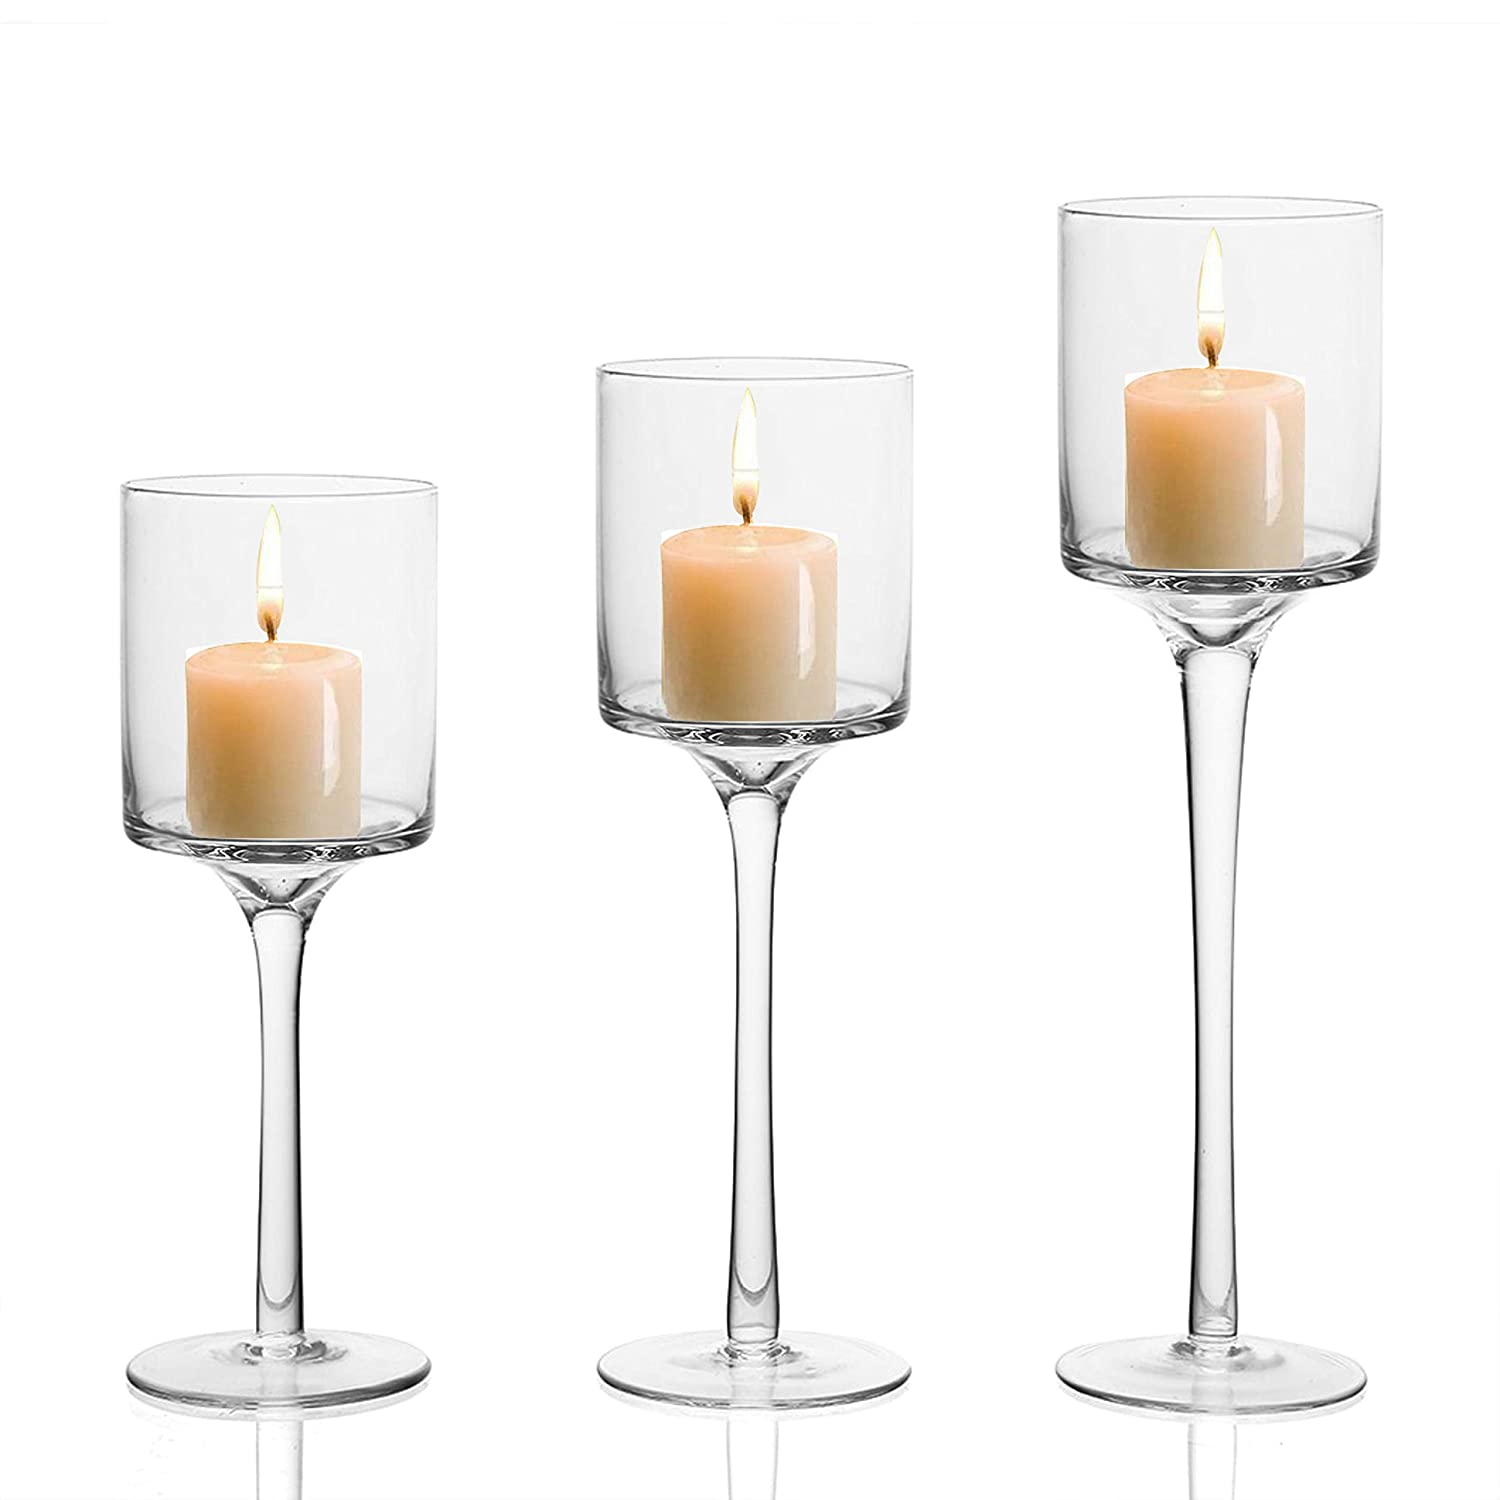 Candle Holder 3 Pcs Different Size L 26cm M 23cm S 20cm Tall Clear Glass Tealight Candle Holder Holds Votive Candles Pillar Candles For